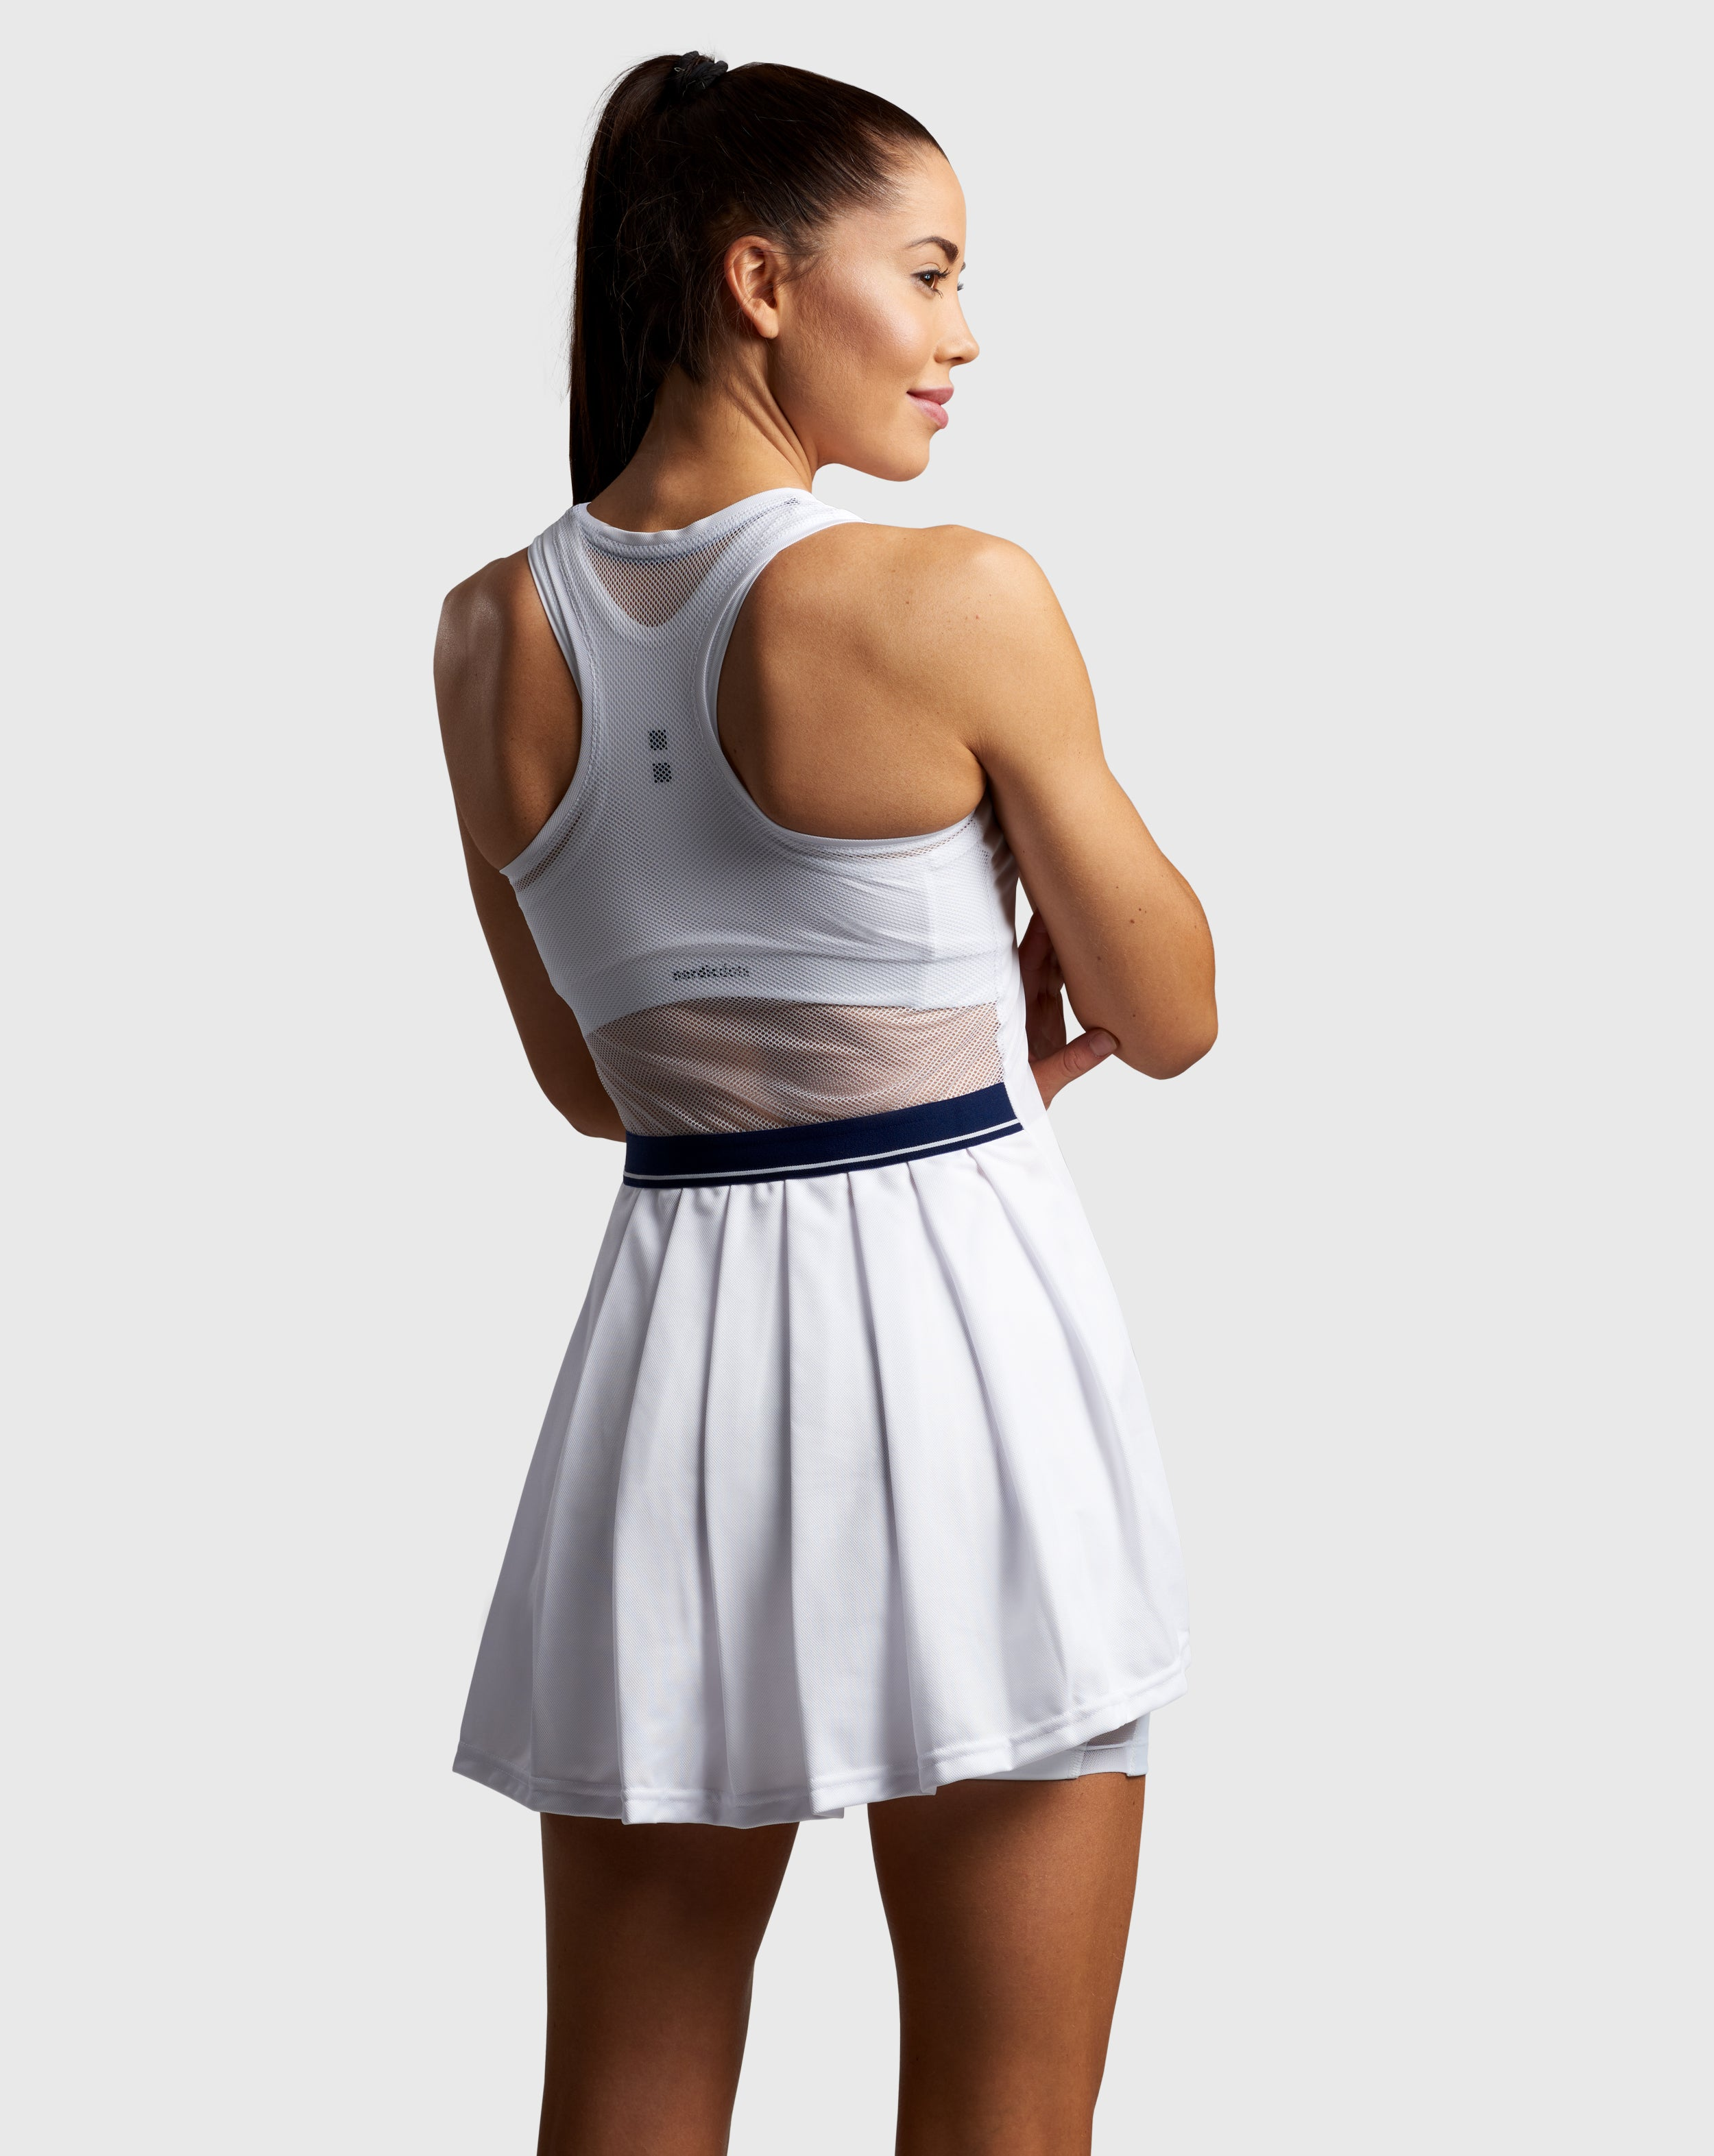 nordicdots elegant tennis dress white